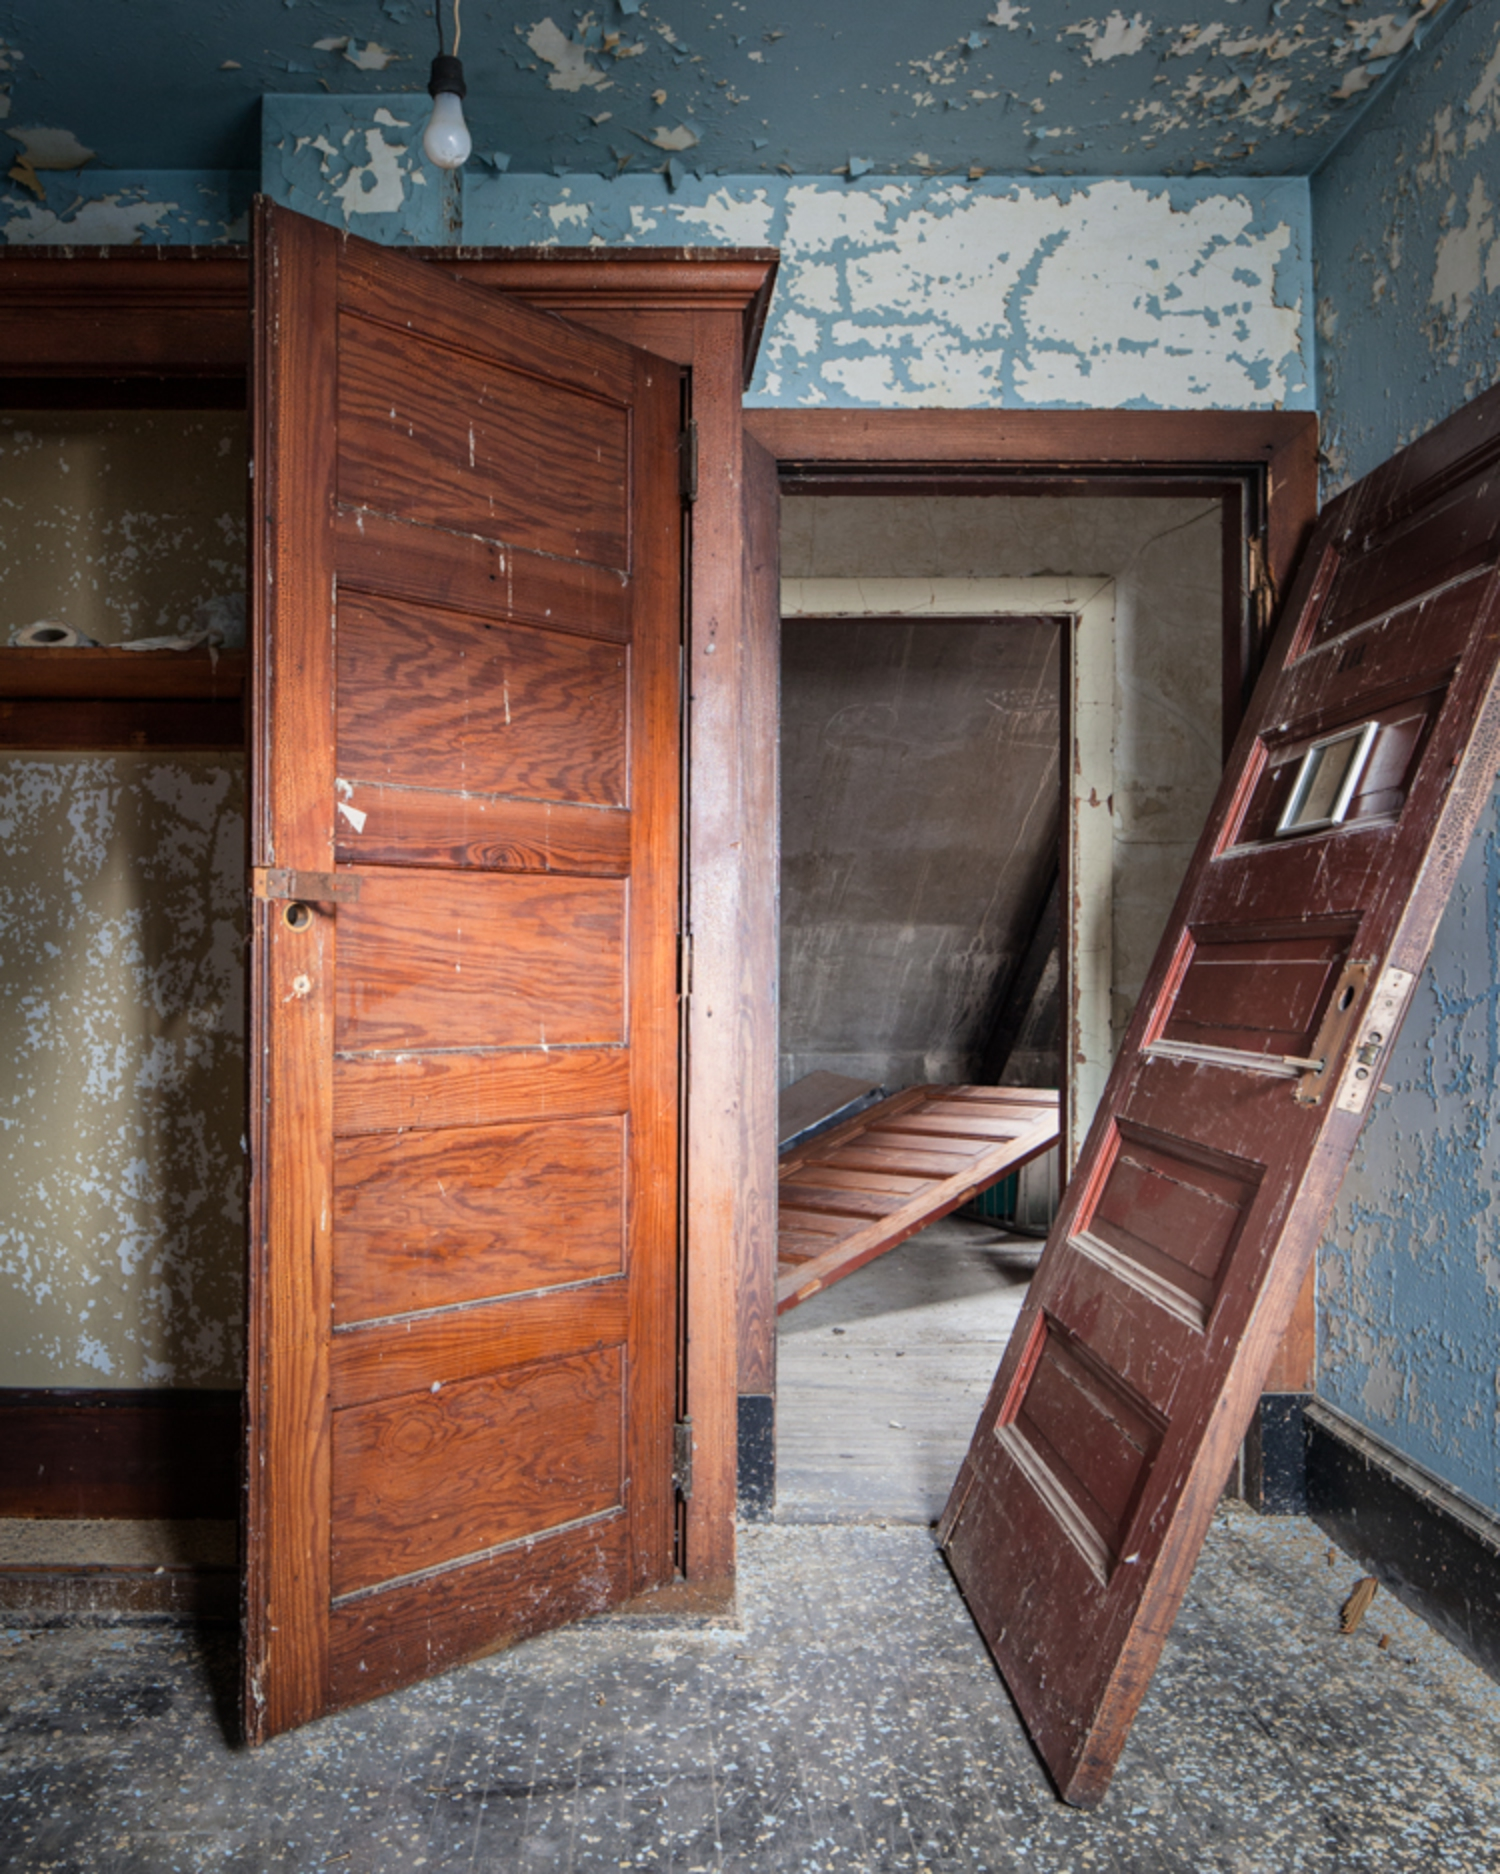 Solid wood wardrobes were far older than furniture on the lower floors.